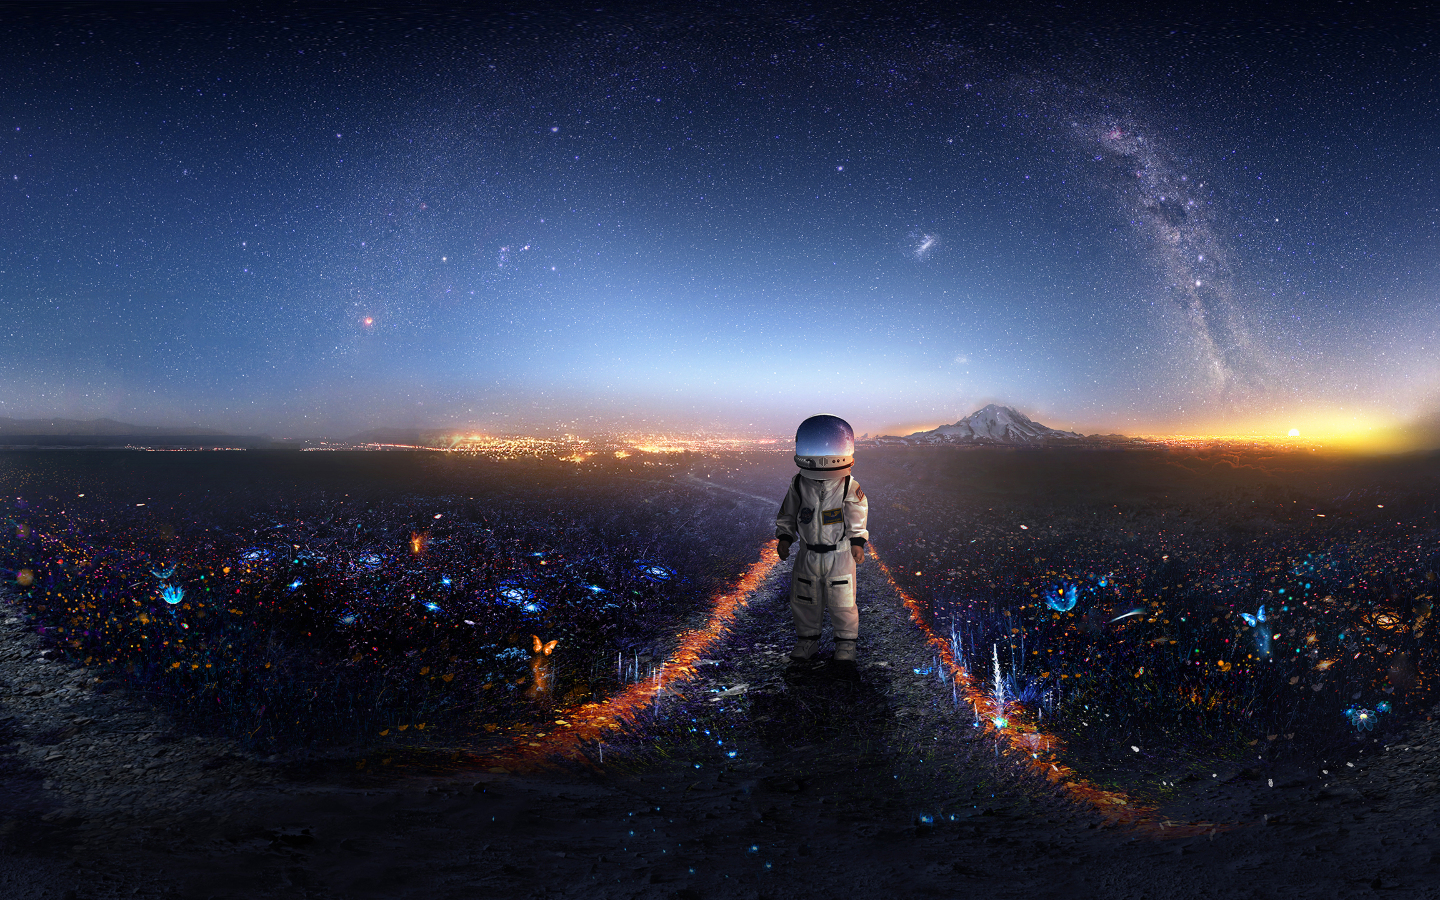 Download Samsung Galaxy Hd Wallpaper Gallery: Download Astronaut Creative Artwork 7680x4320 Resolution